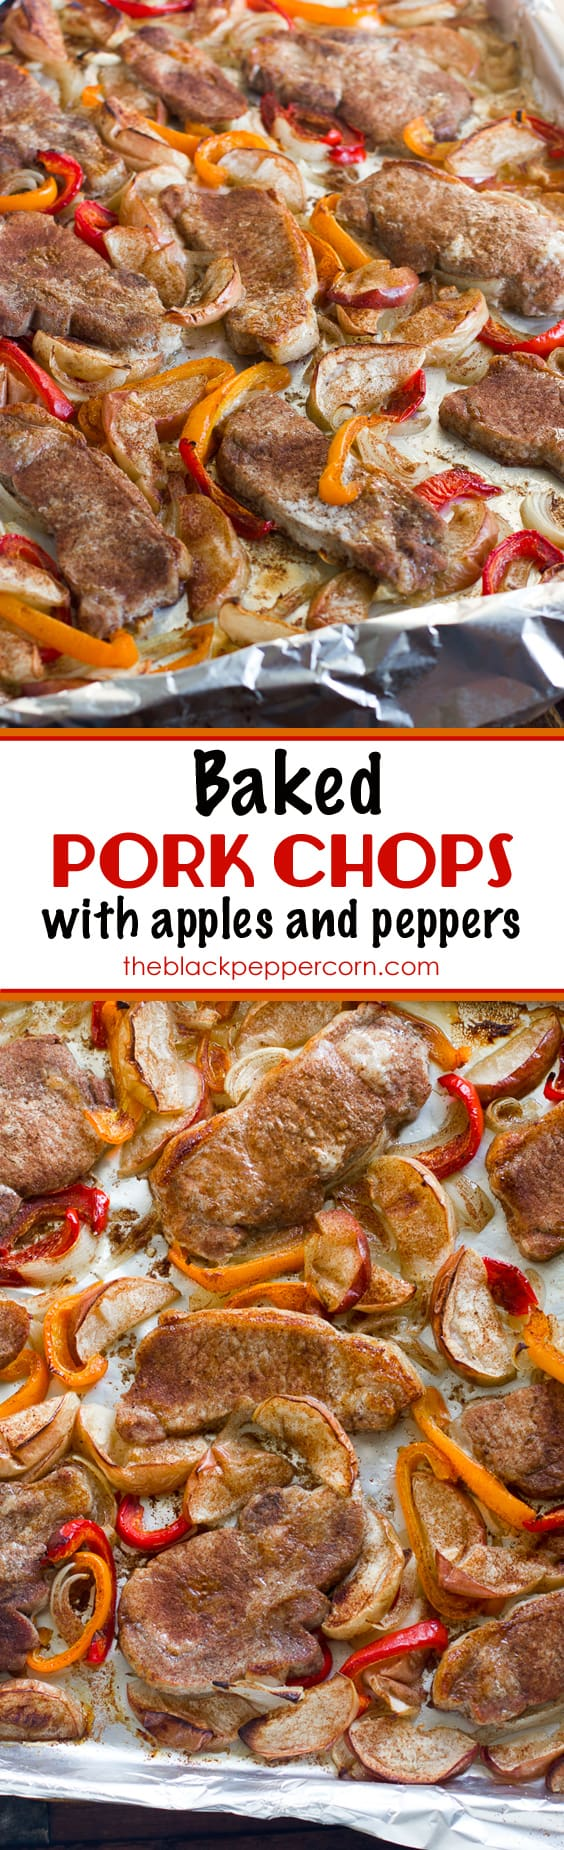 Baked pork chops with apples and peppers recipe how to cook pork baked pork chops with apples and peppers recipe how to cook pork chops bone in or boneless in the oven bake these centre cut loin pork chops with ccuart Image collections